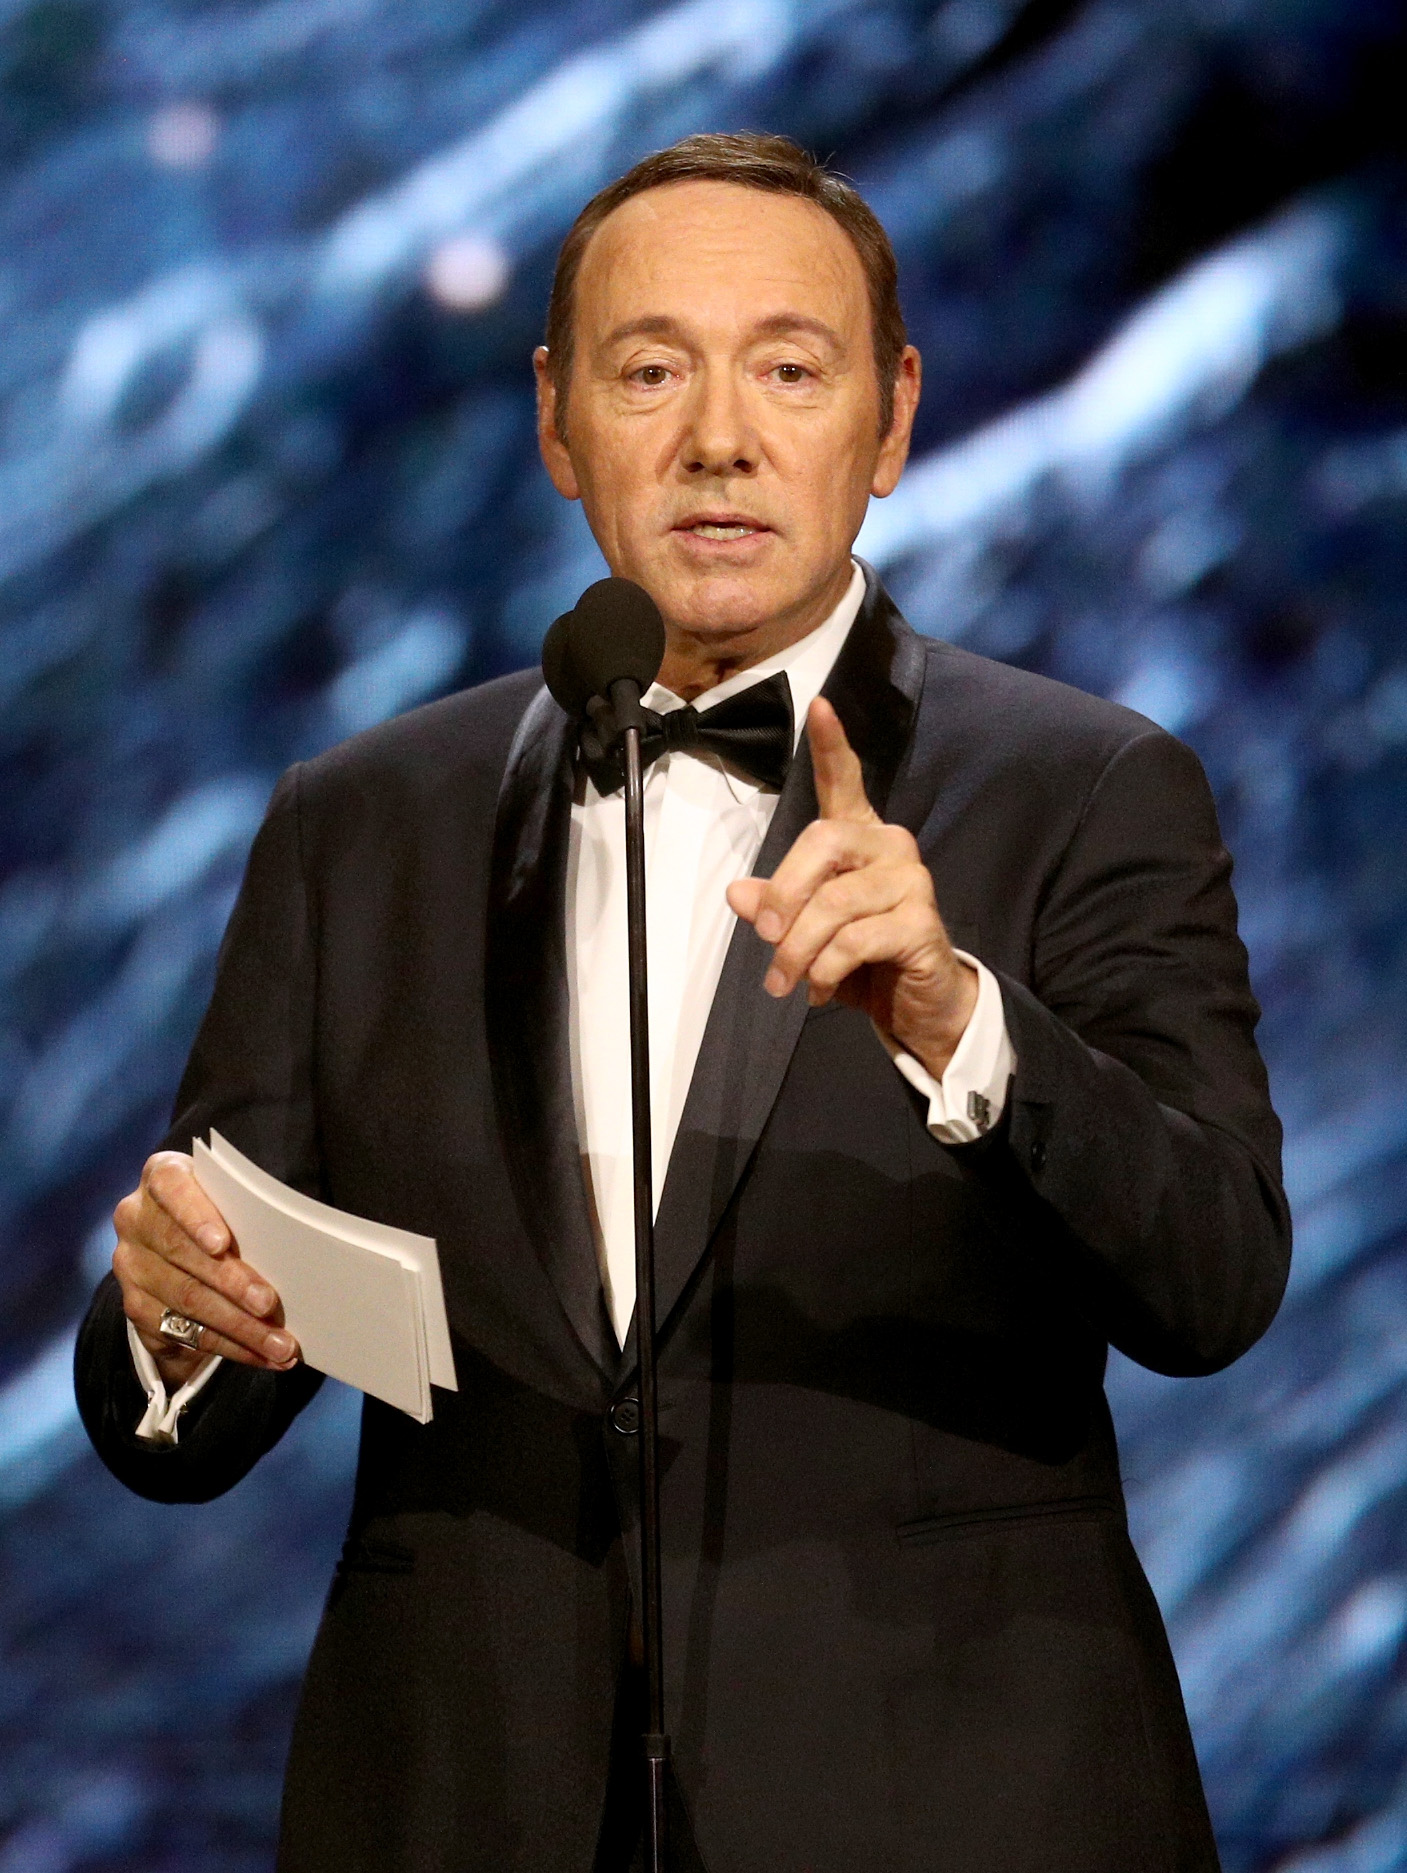 Kevin Spacey onstage to present Britannia Award for Excellence in Television presented by Swarovski at the 2017 AMD British Academy Britannia Awards Presented by American Airlines And Jaguar Land Rover at The Beverly Hilton Hotel on October 27, 2017 in Beverly Hills, California.